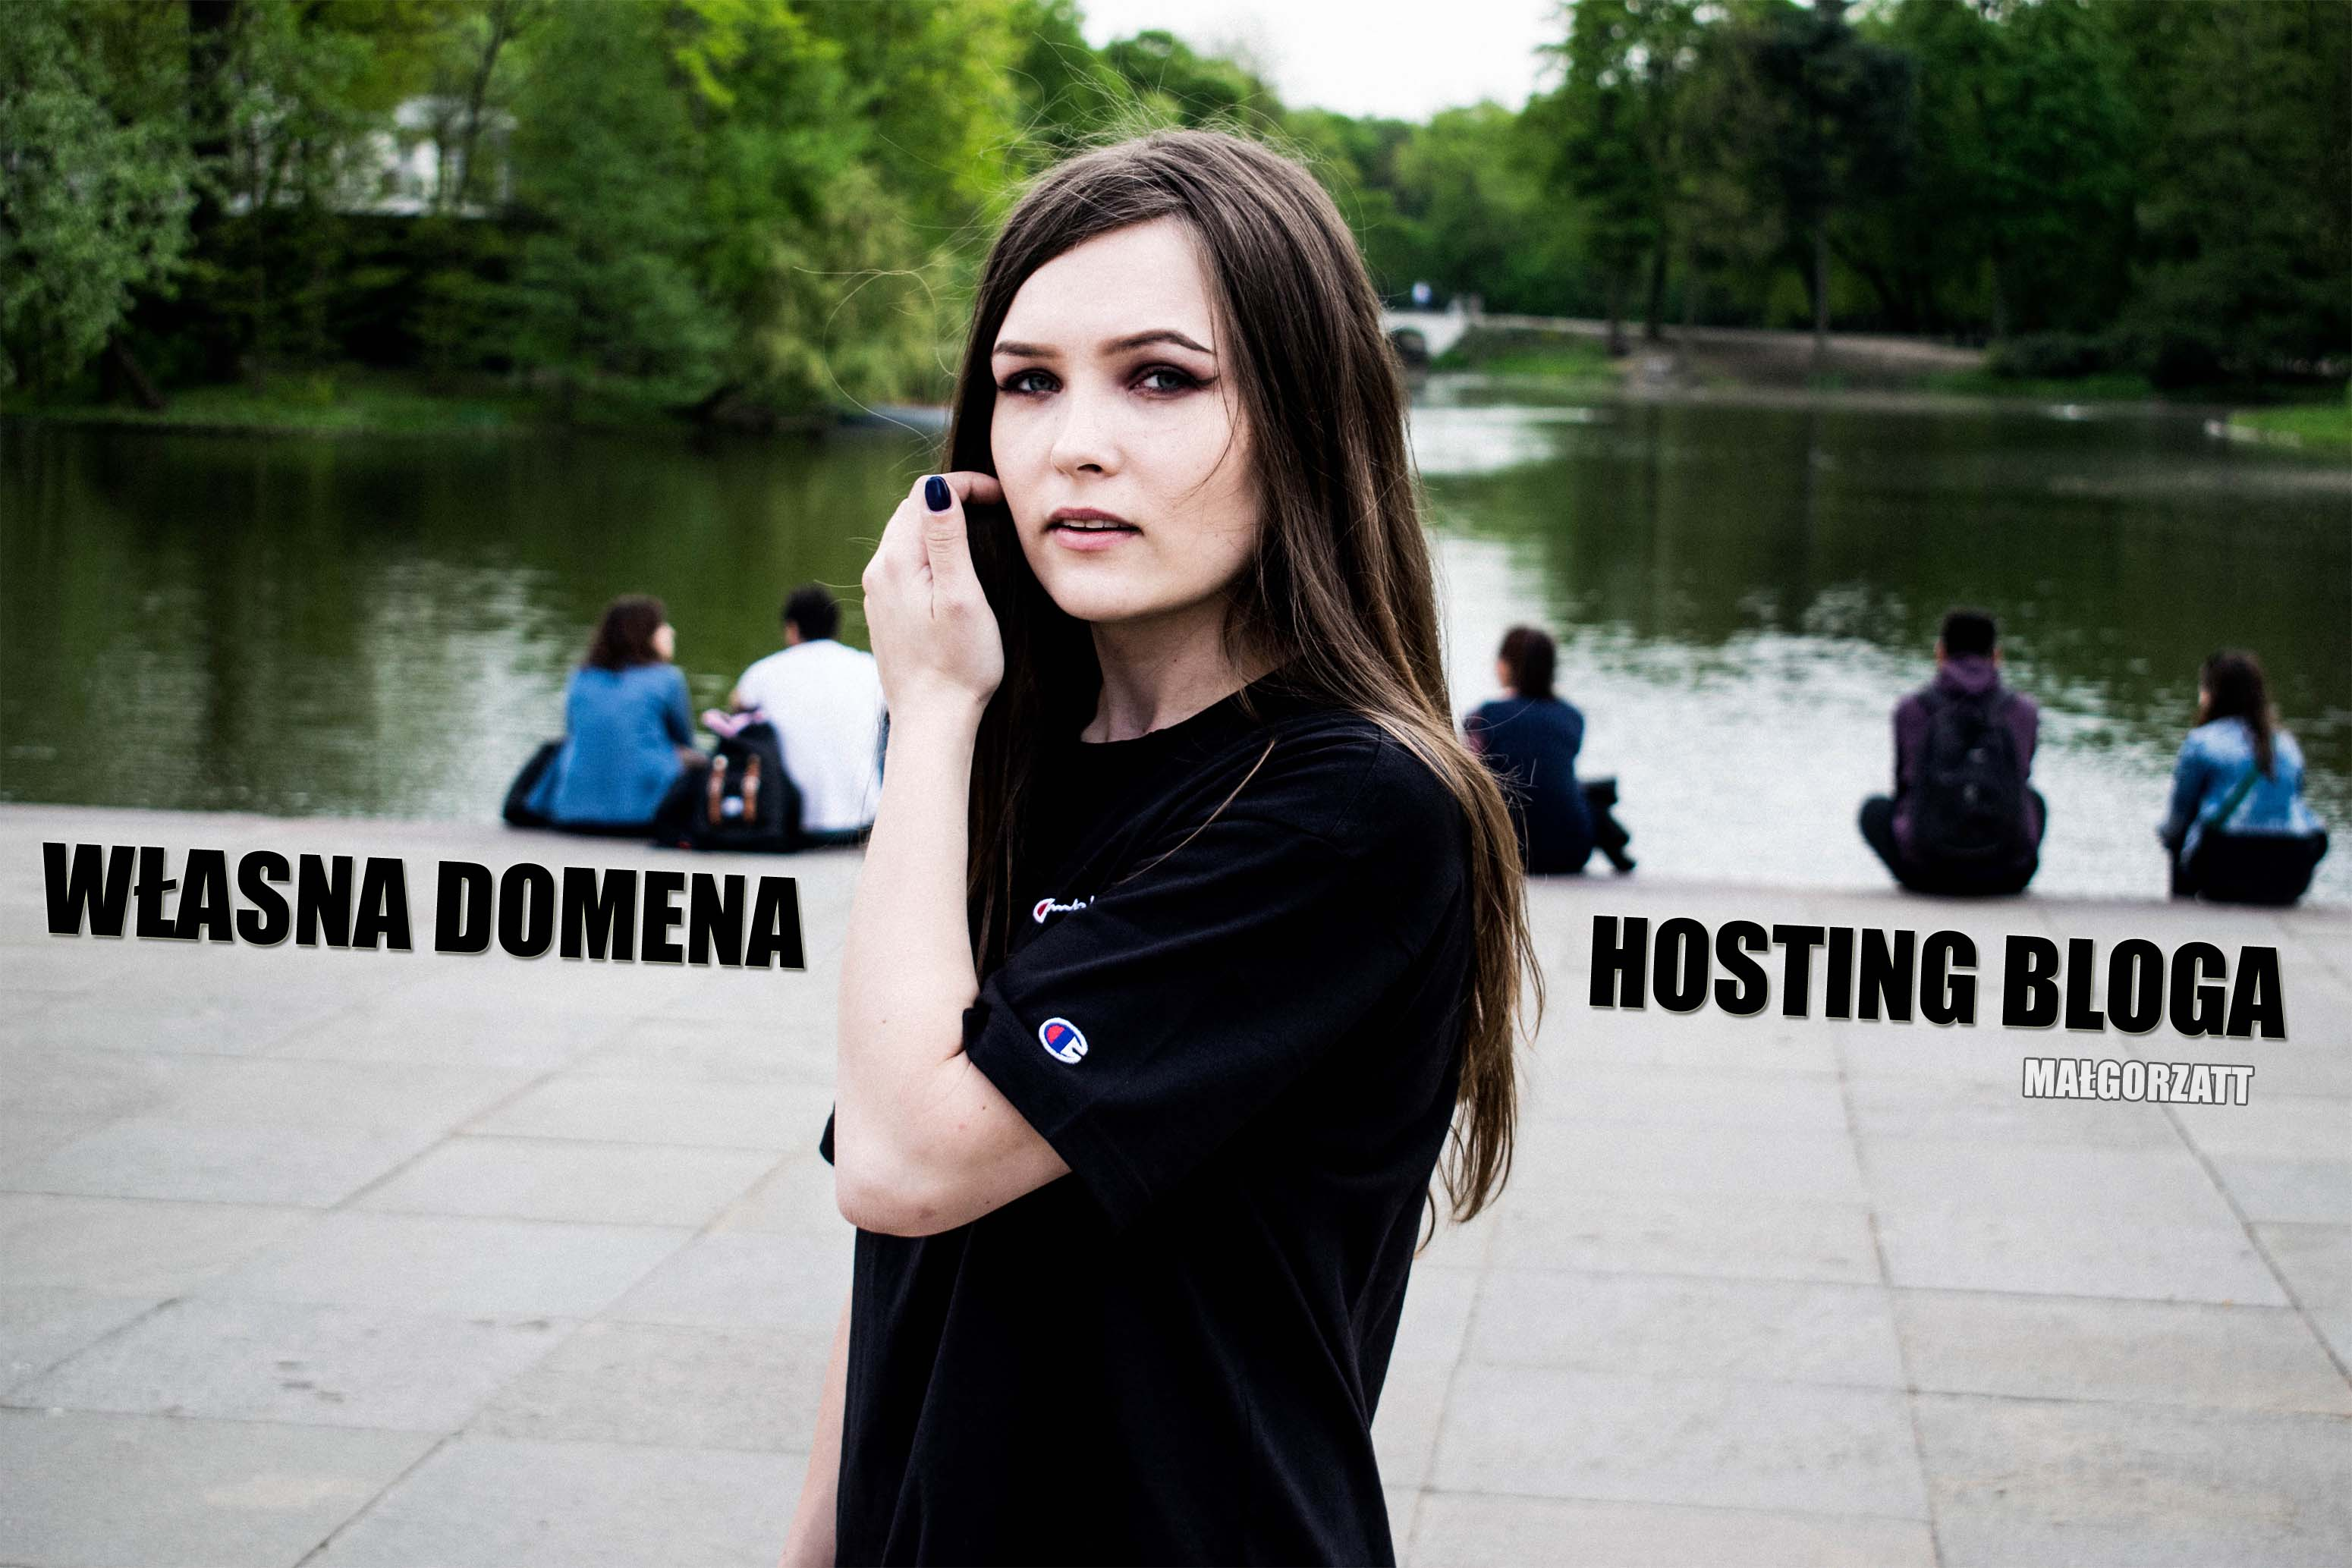 własna domena i hosting bloga